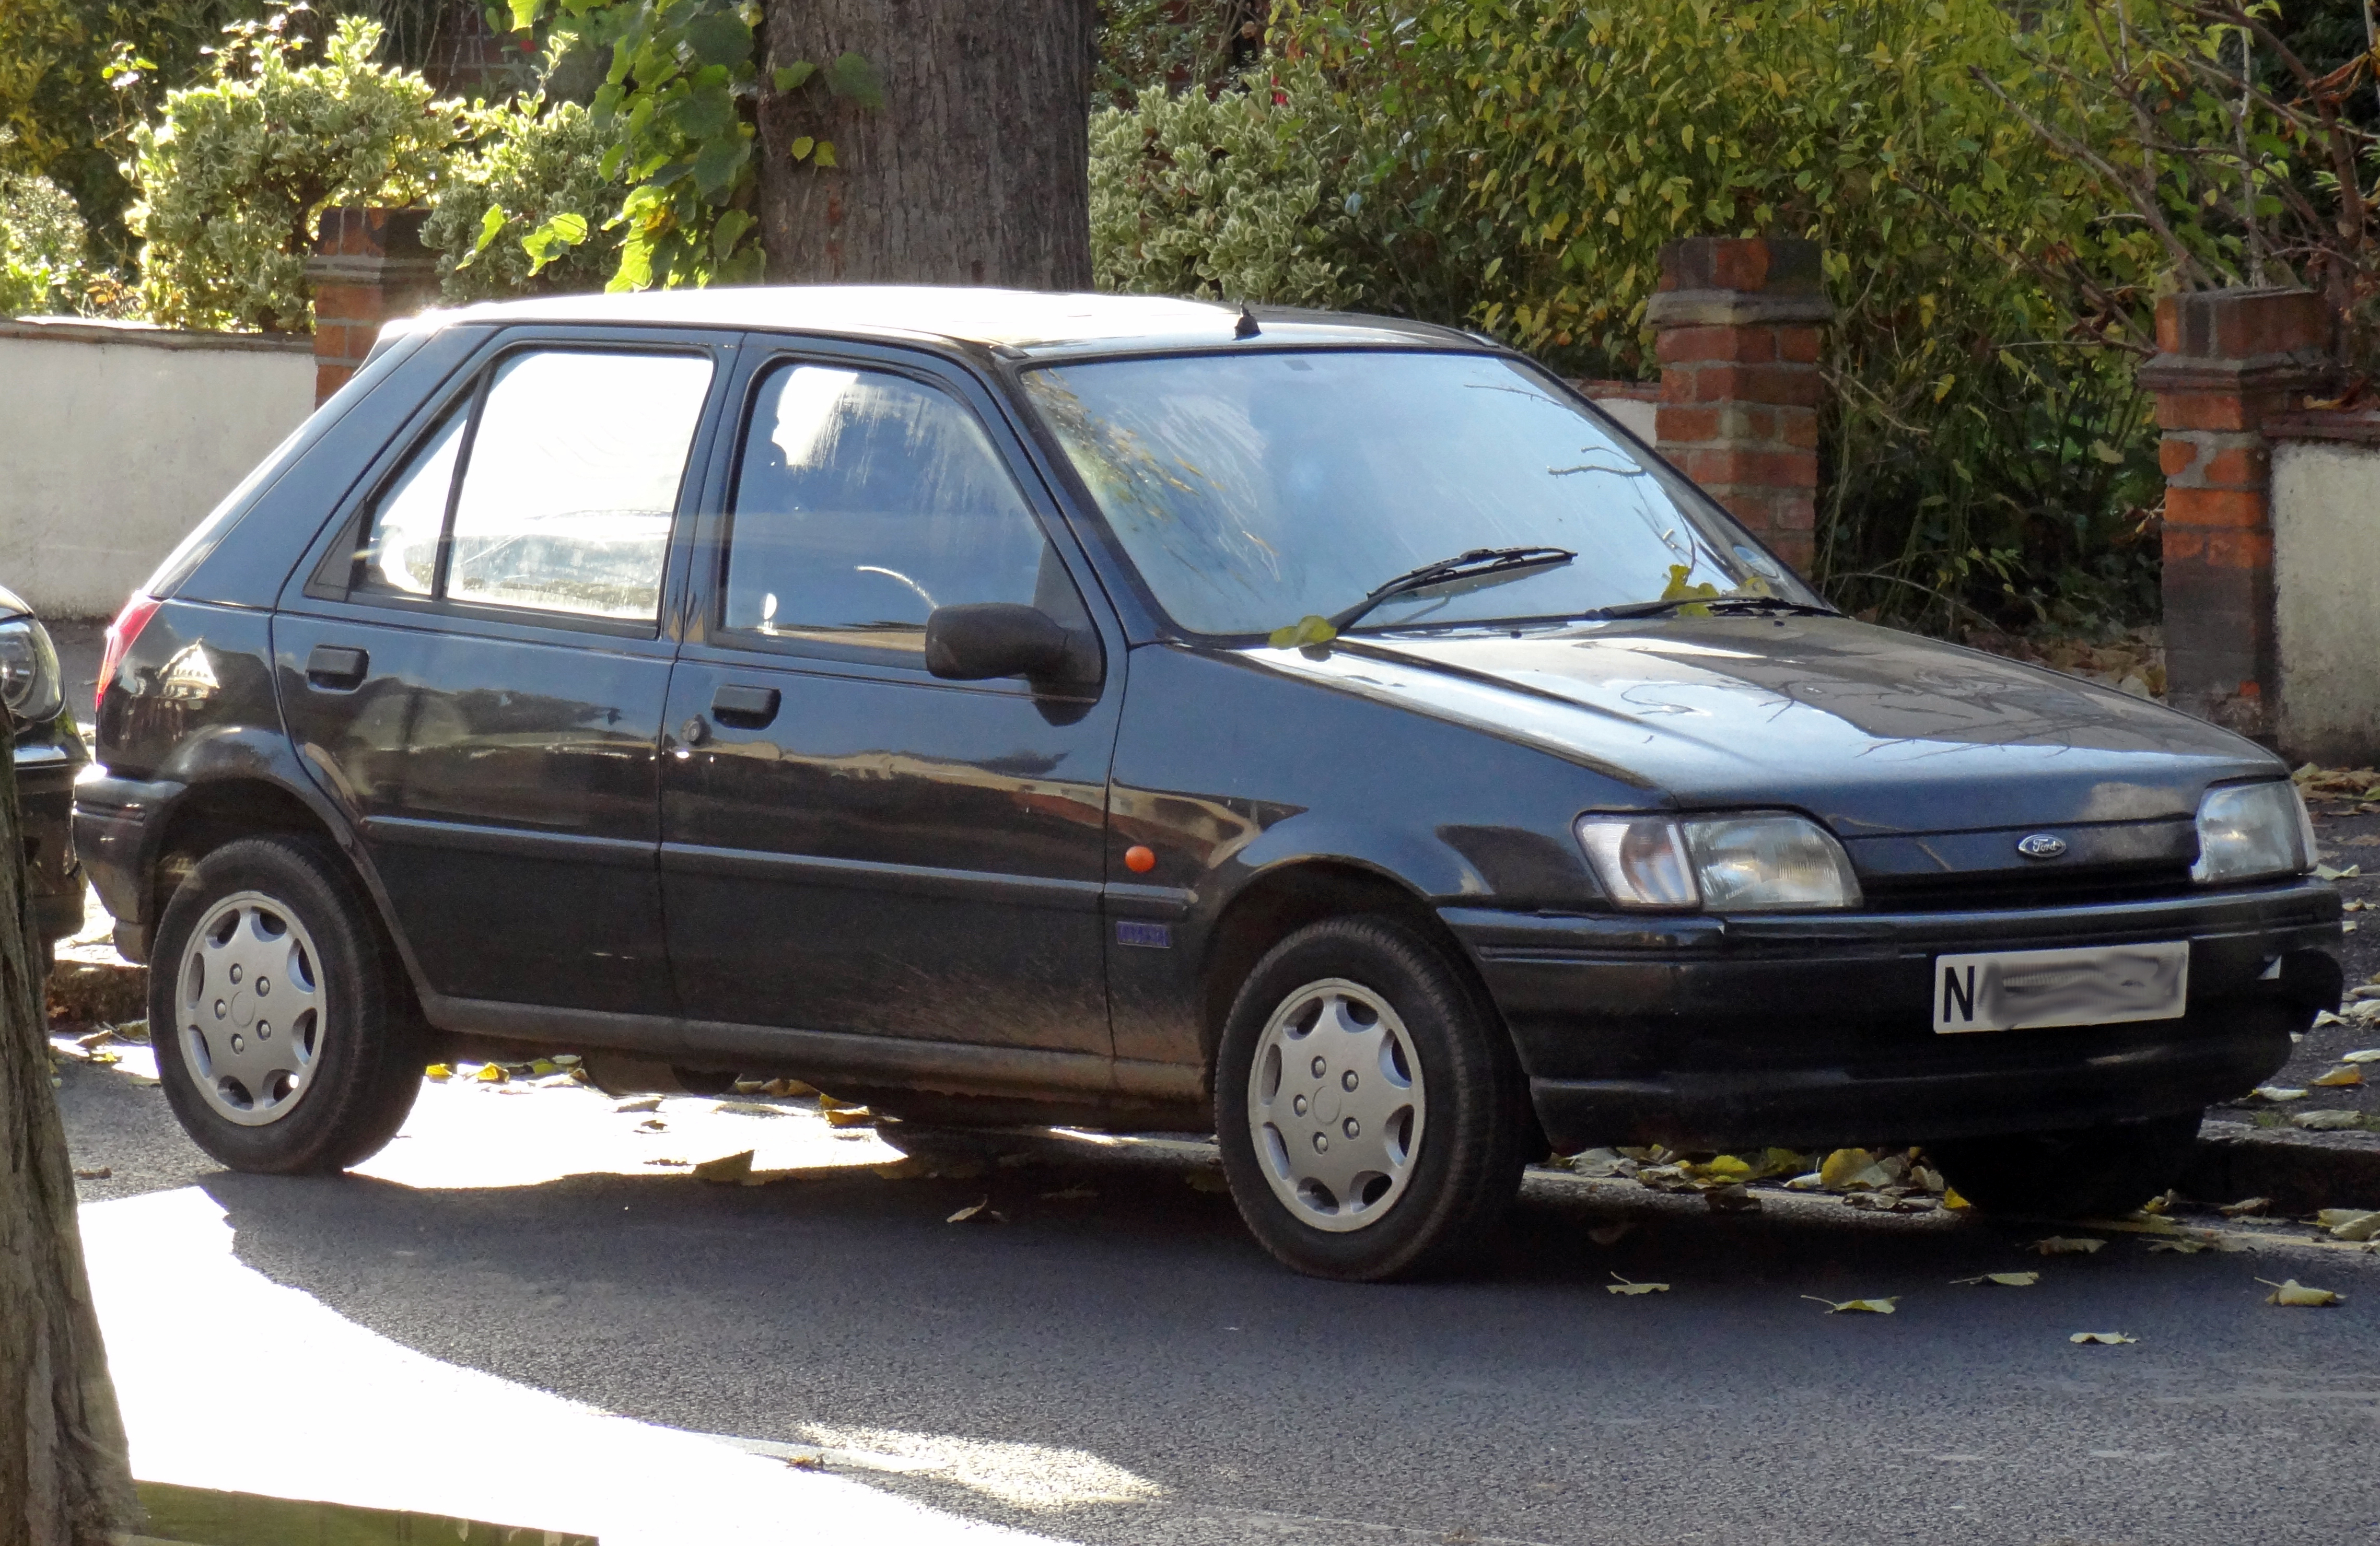 file ford fiesta mk3 produced between 1989 1997 jpg wikimedia commons. Black Bedroom Furniture Sets. Home Design Ideas